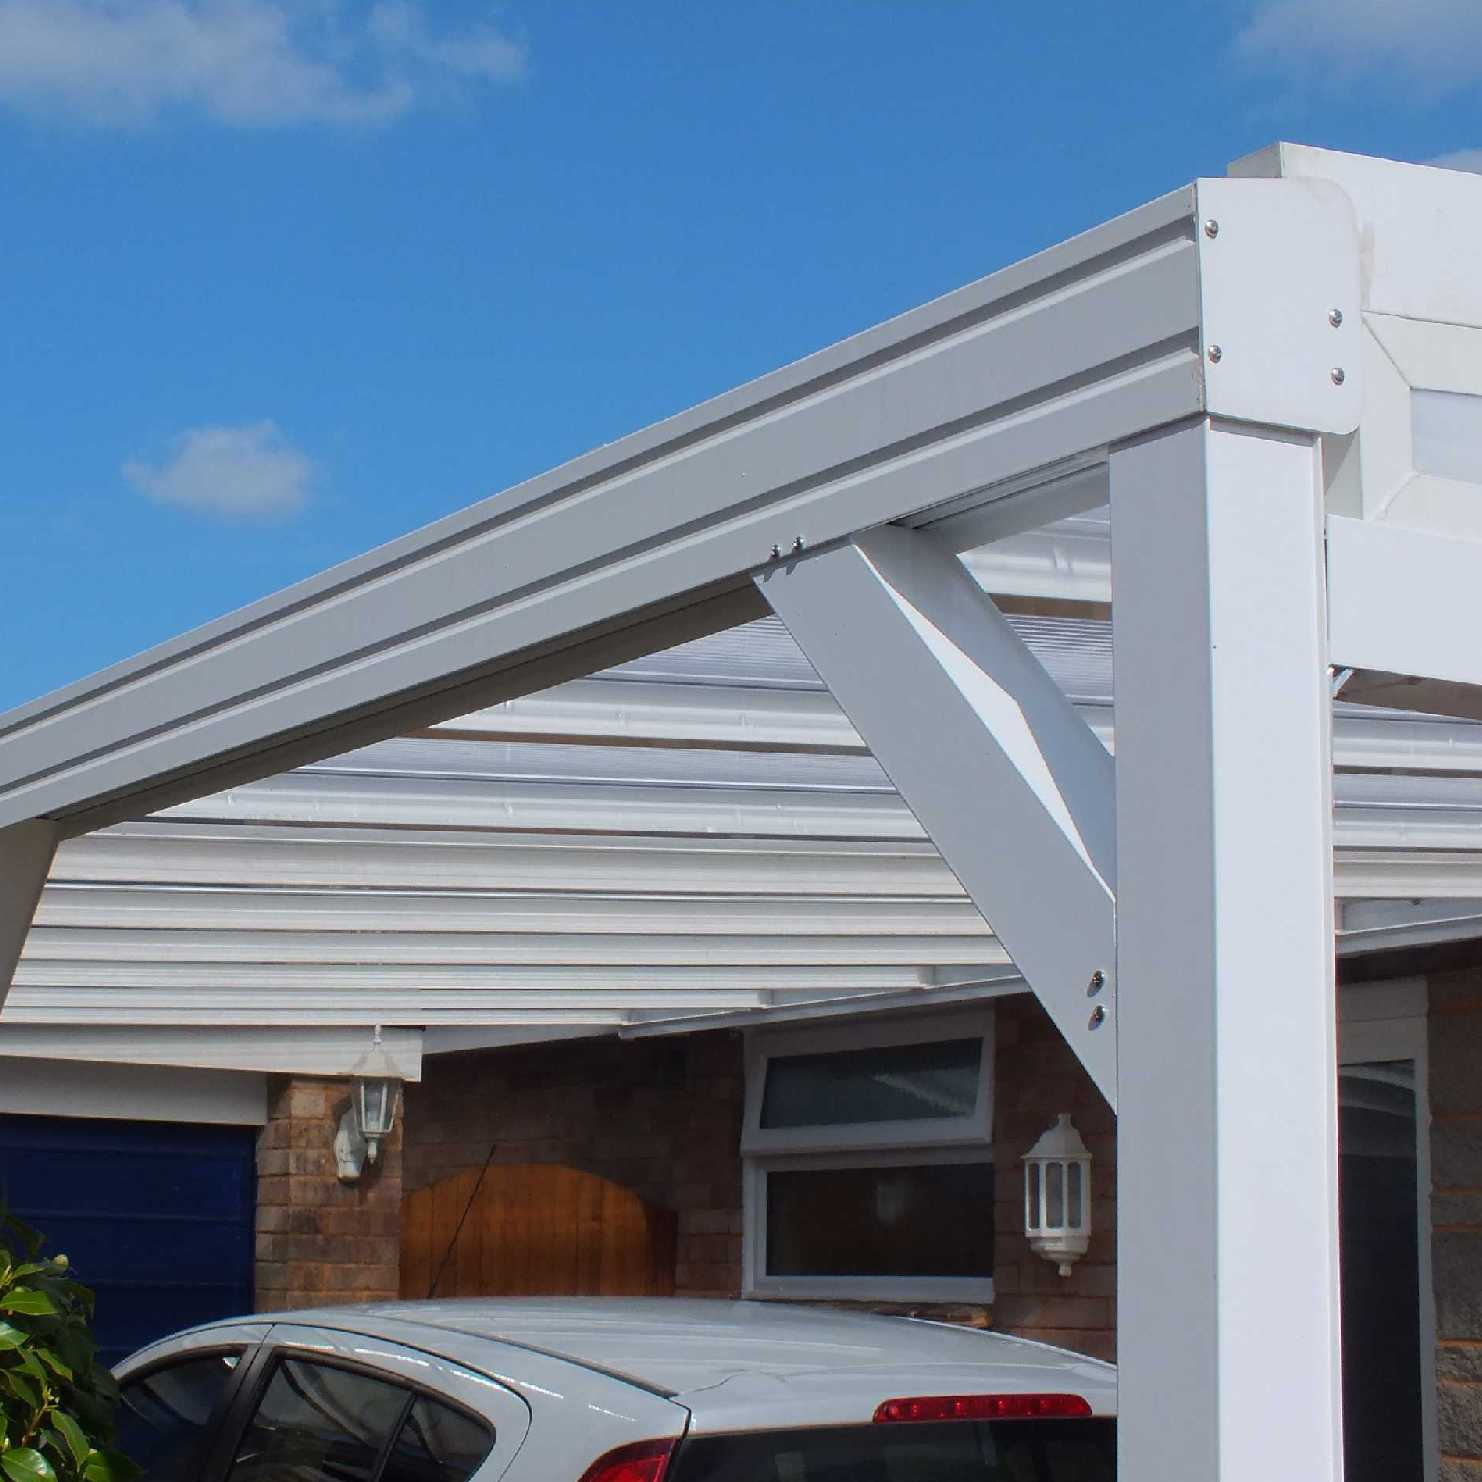 Omega Smart White Lean-To Canopy with 16mm Polycarbonate Glazing - 10.6m (W) x 1.5m (P), (5) Supporting Posts from Omega Build